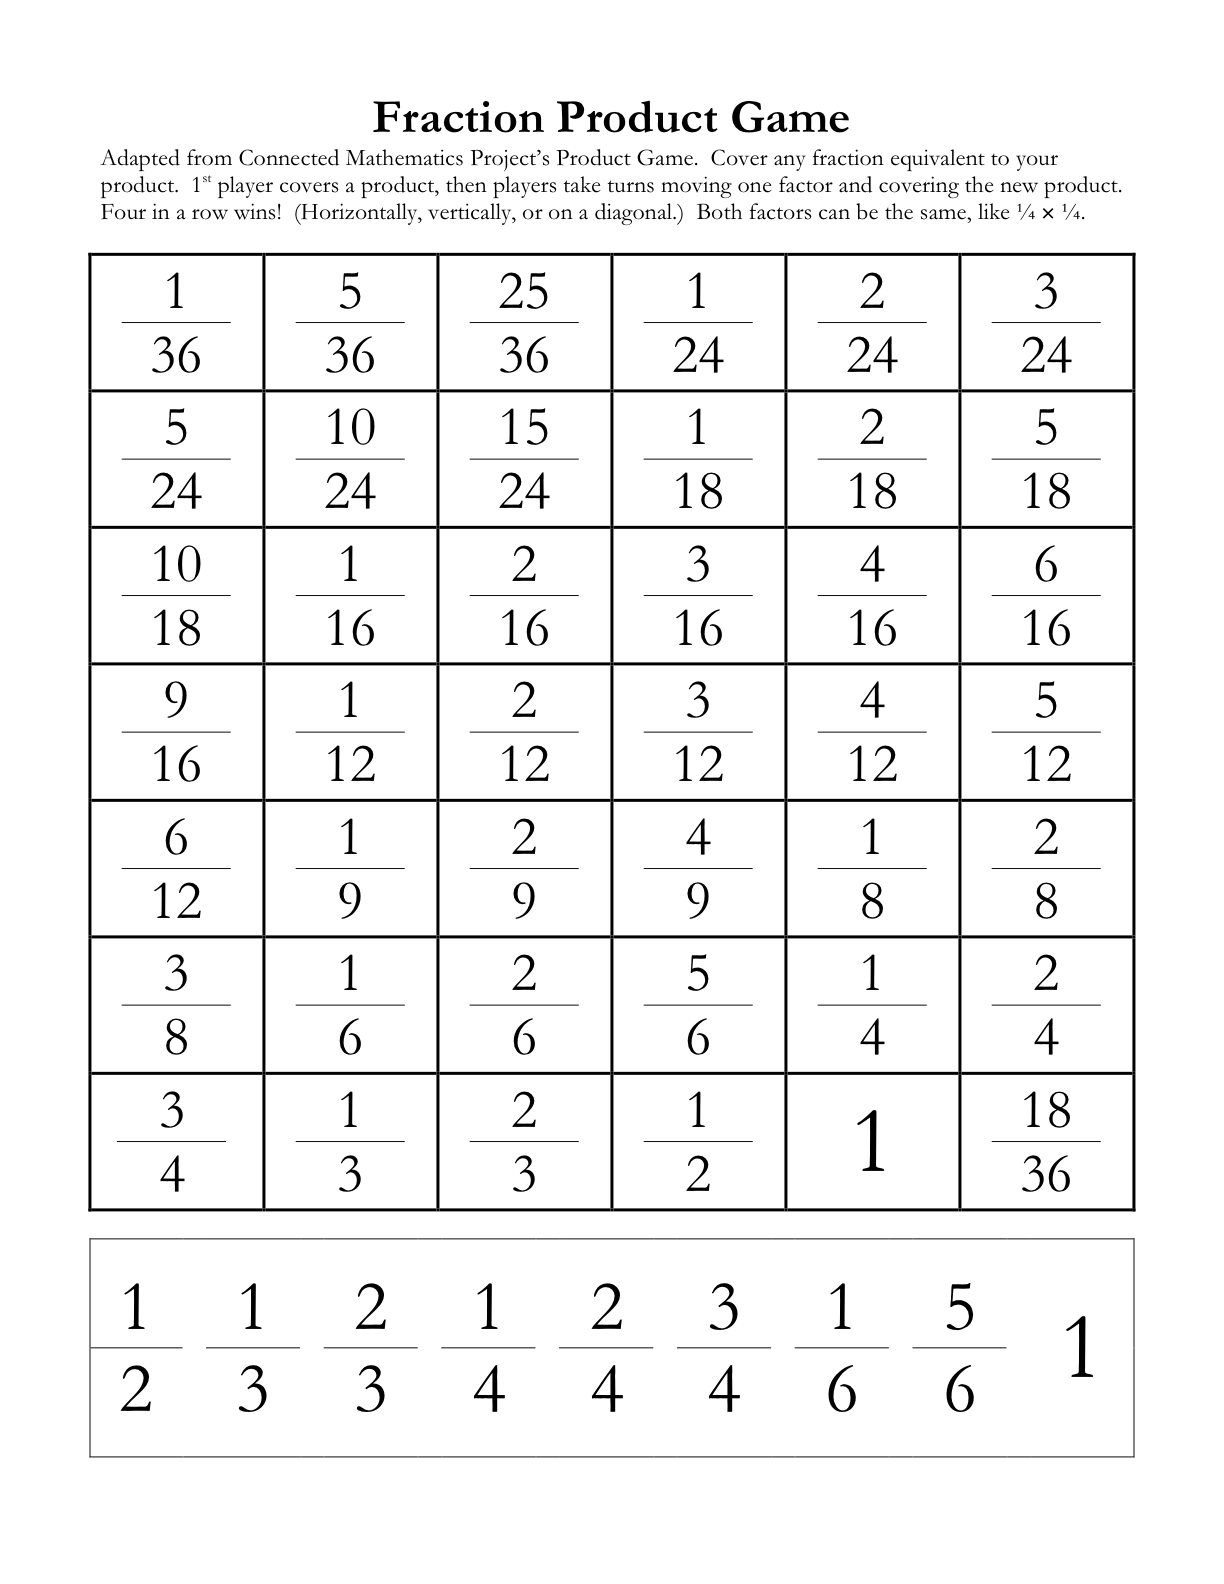 Worksheet 8541006 Fraction Puzzle Worksheets Puzzle Worksheets – Math 24 Game Worksheets